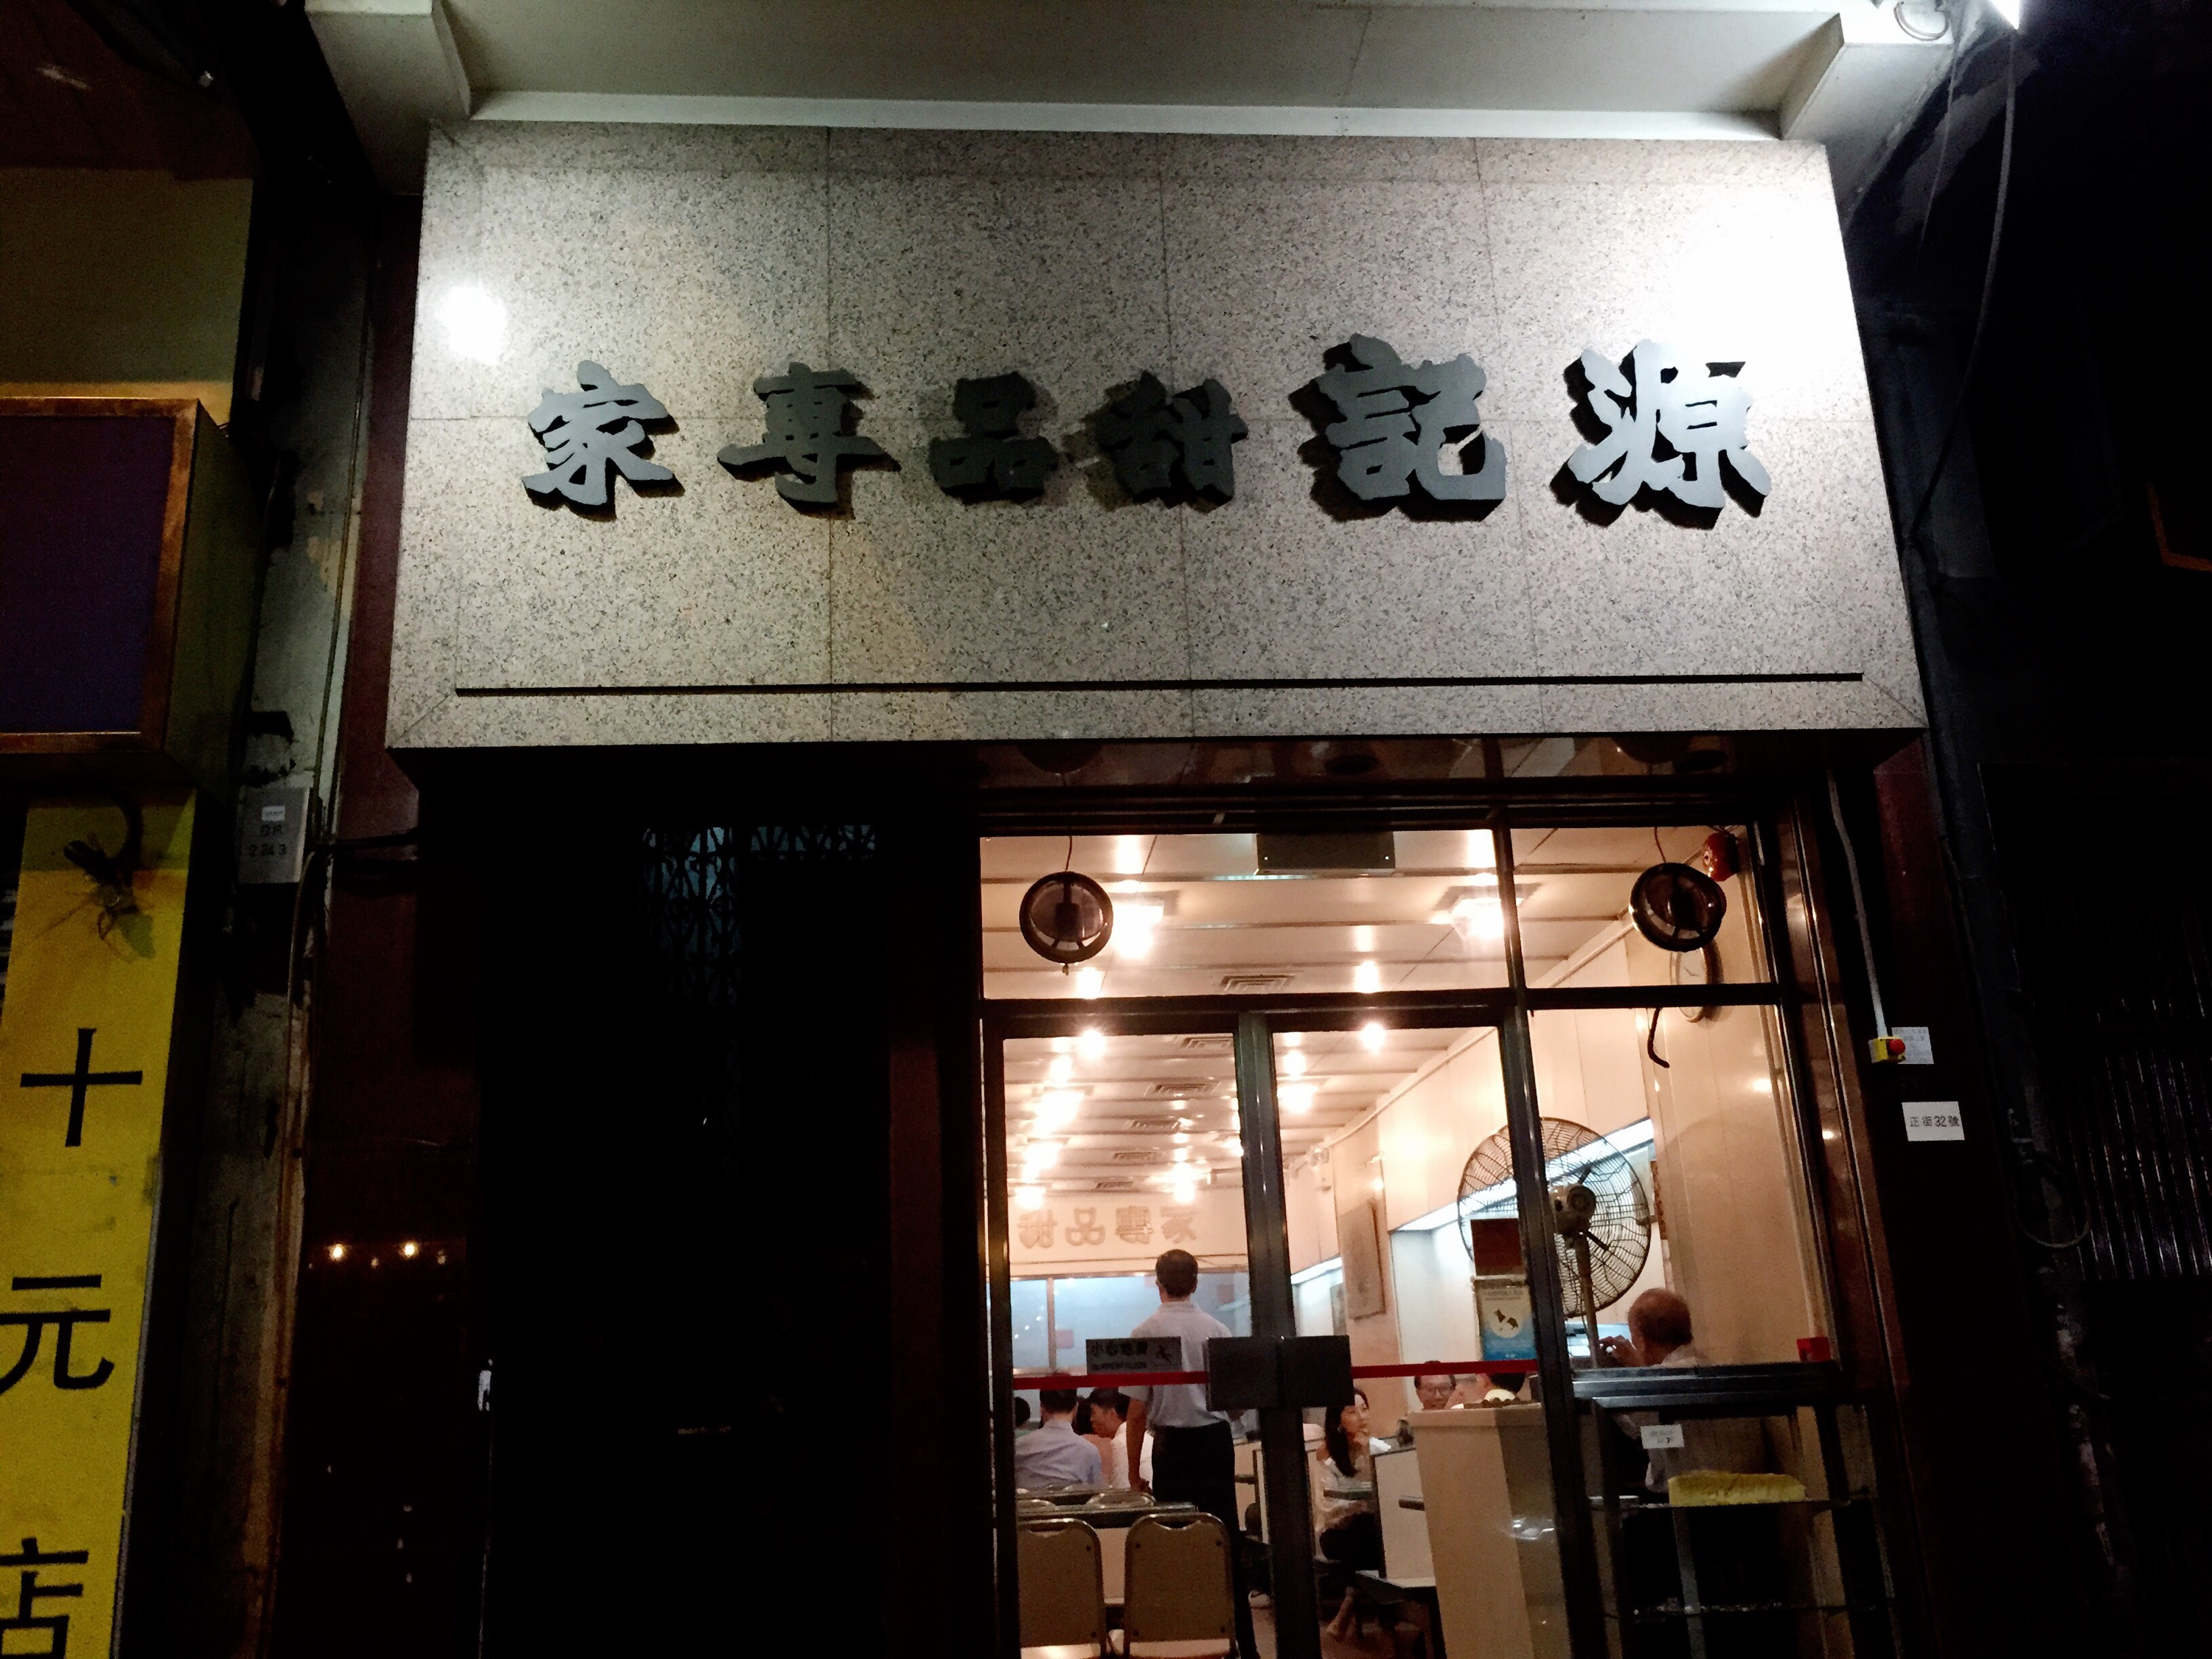 The shopfront of Yuen Kee.